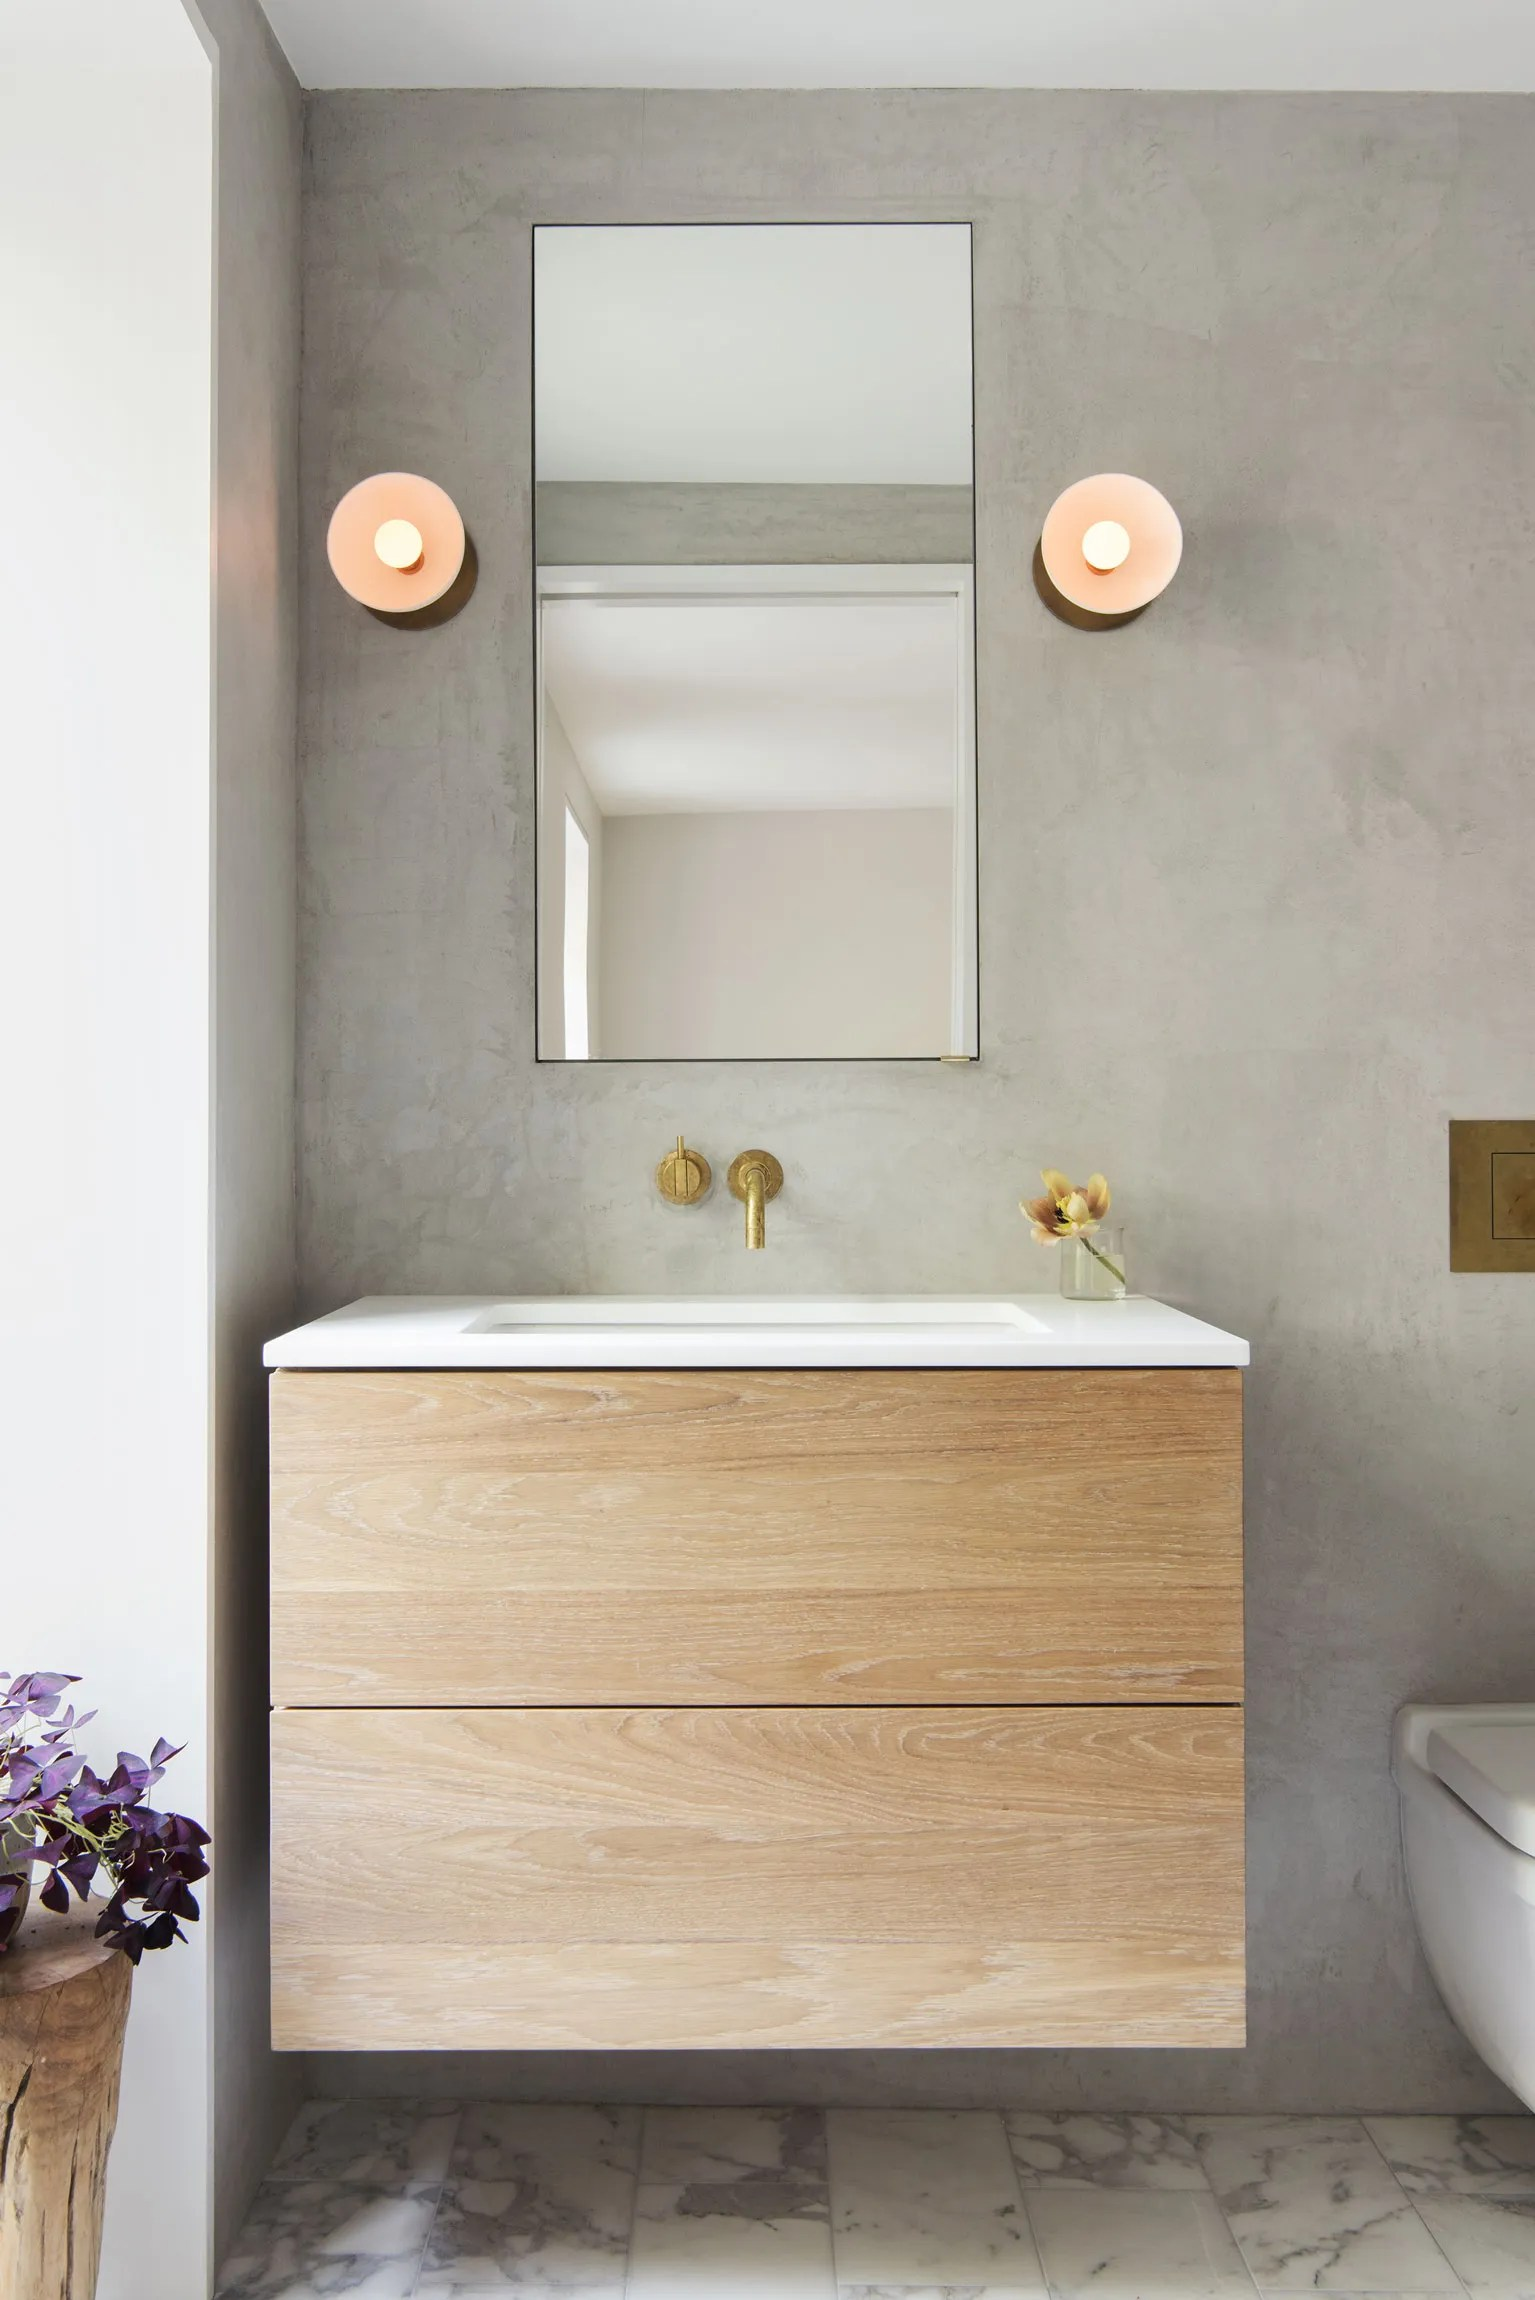 Bathroom With Mirrors 12 Bathroom Mirror Ideas For Every Style Architectural Digest